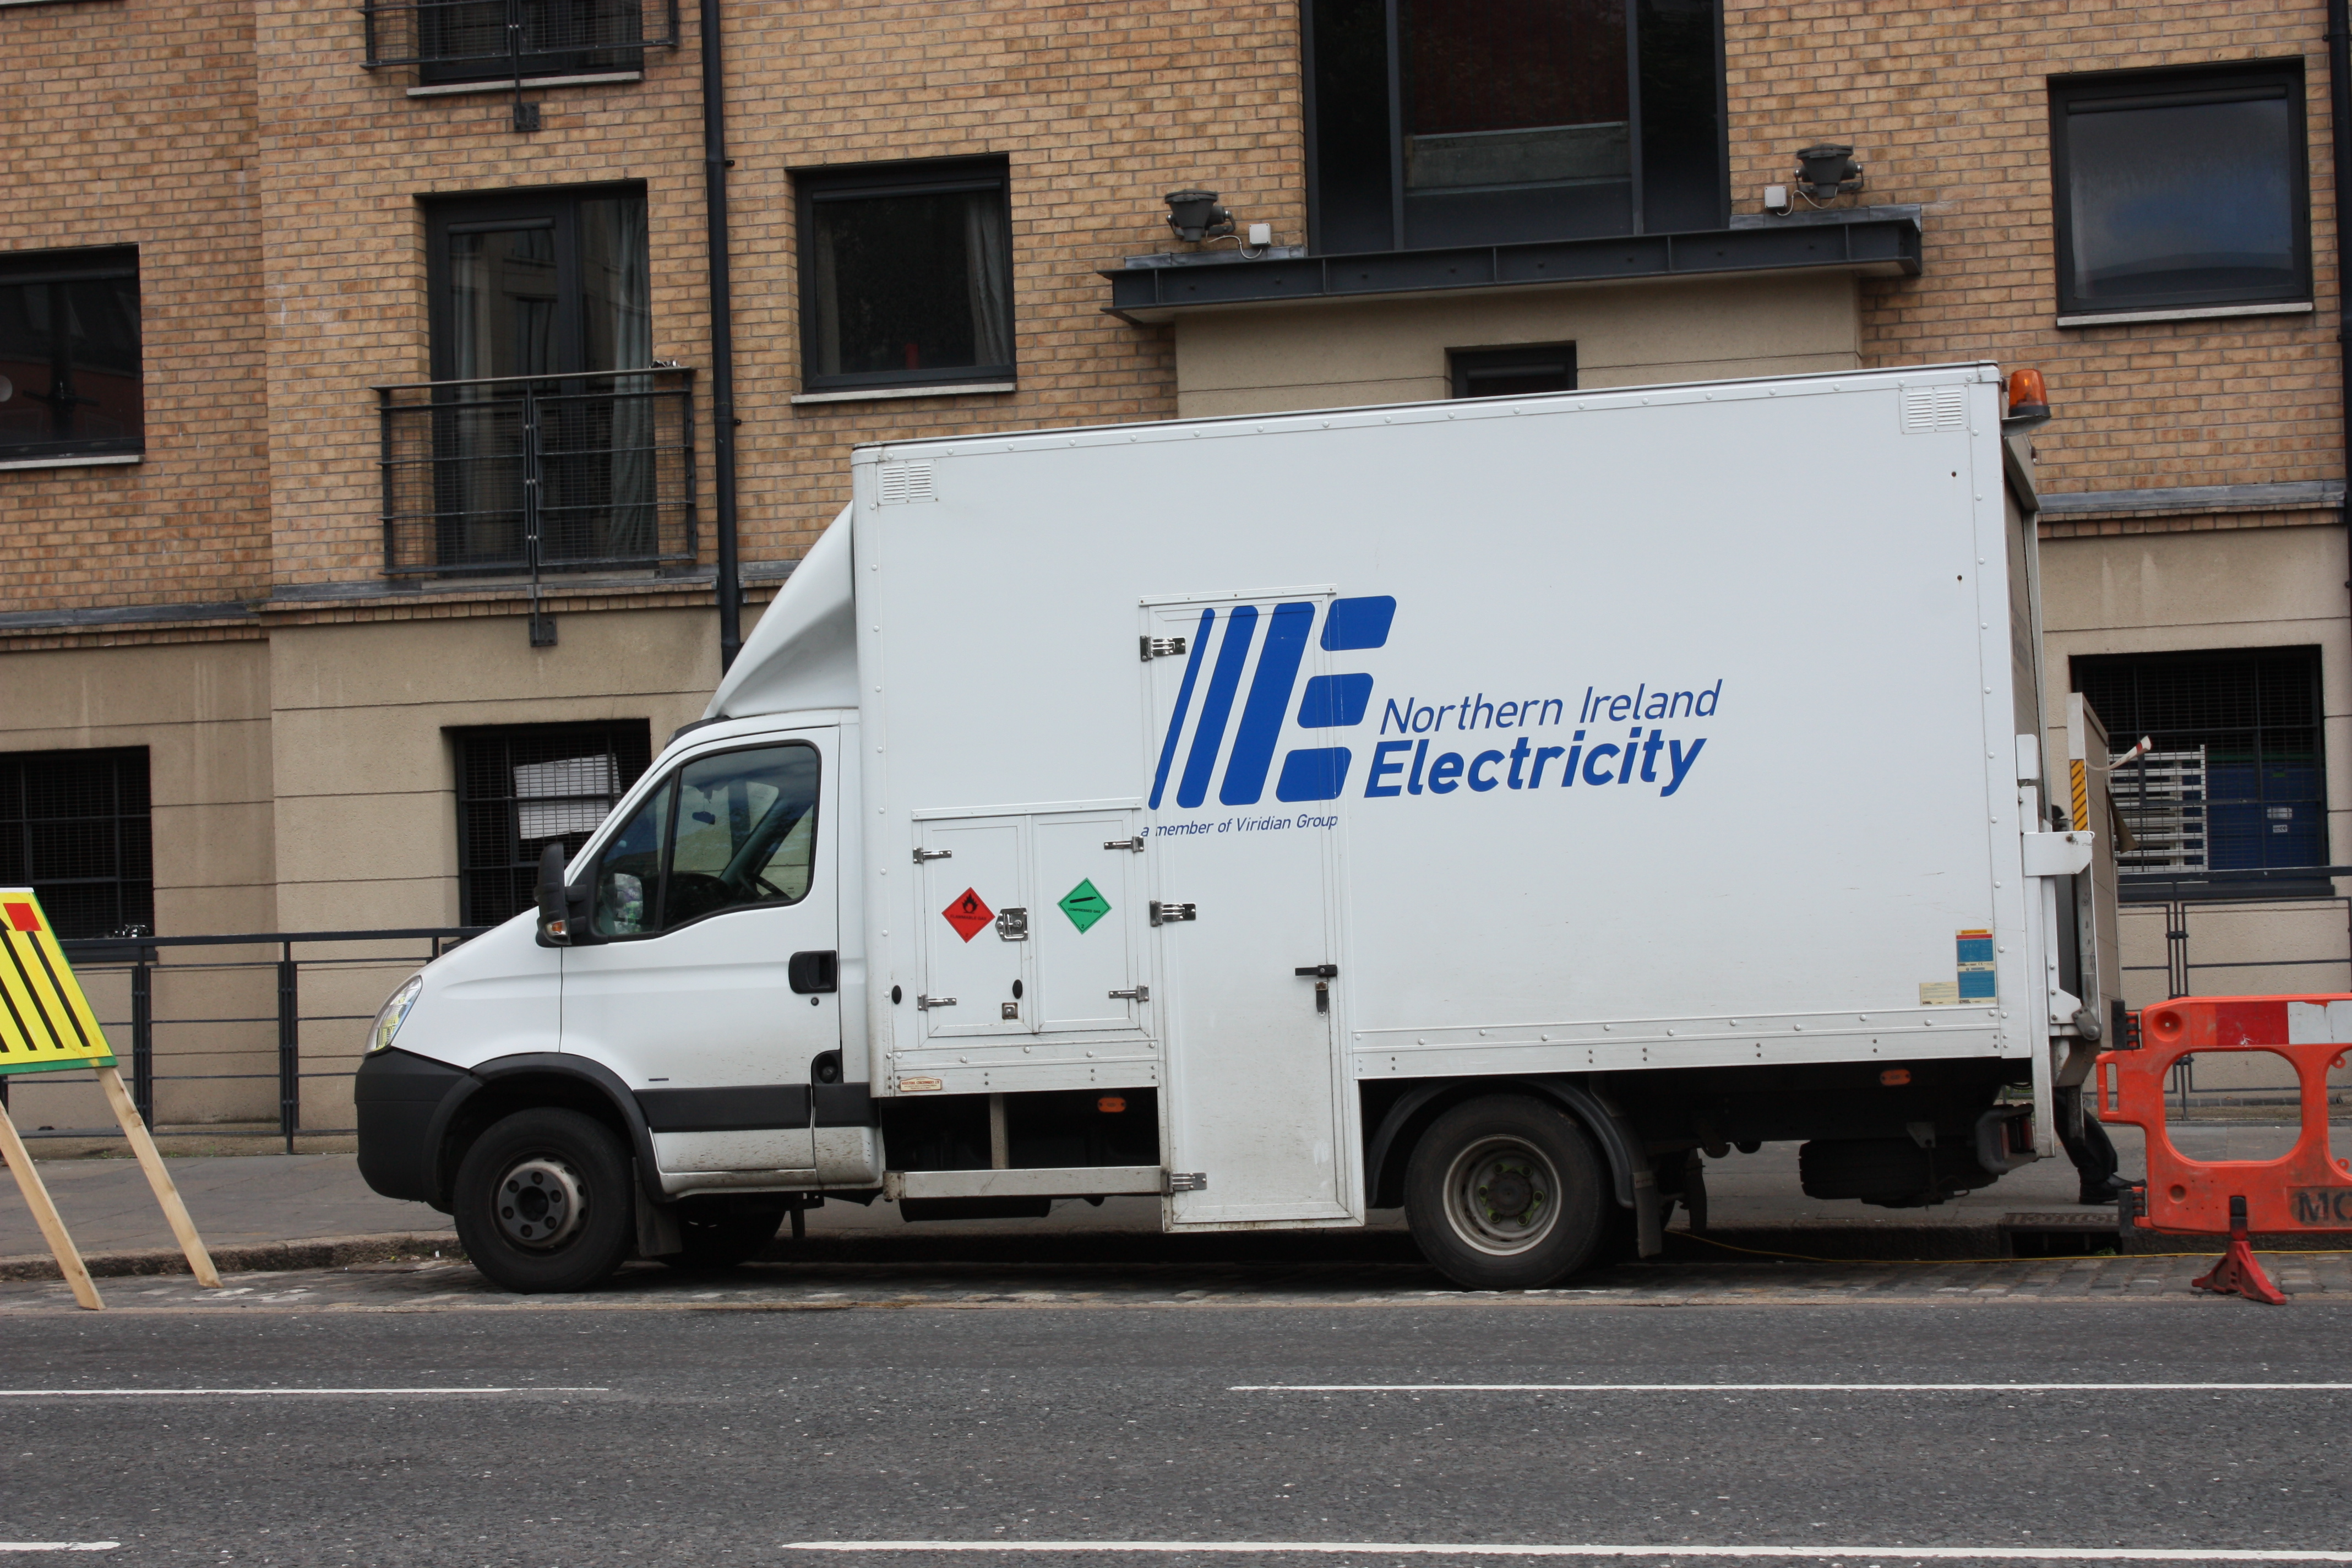 File:Northern Ireland Electricity van, Belfast, July 2006.JPG ...